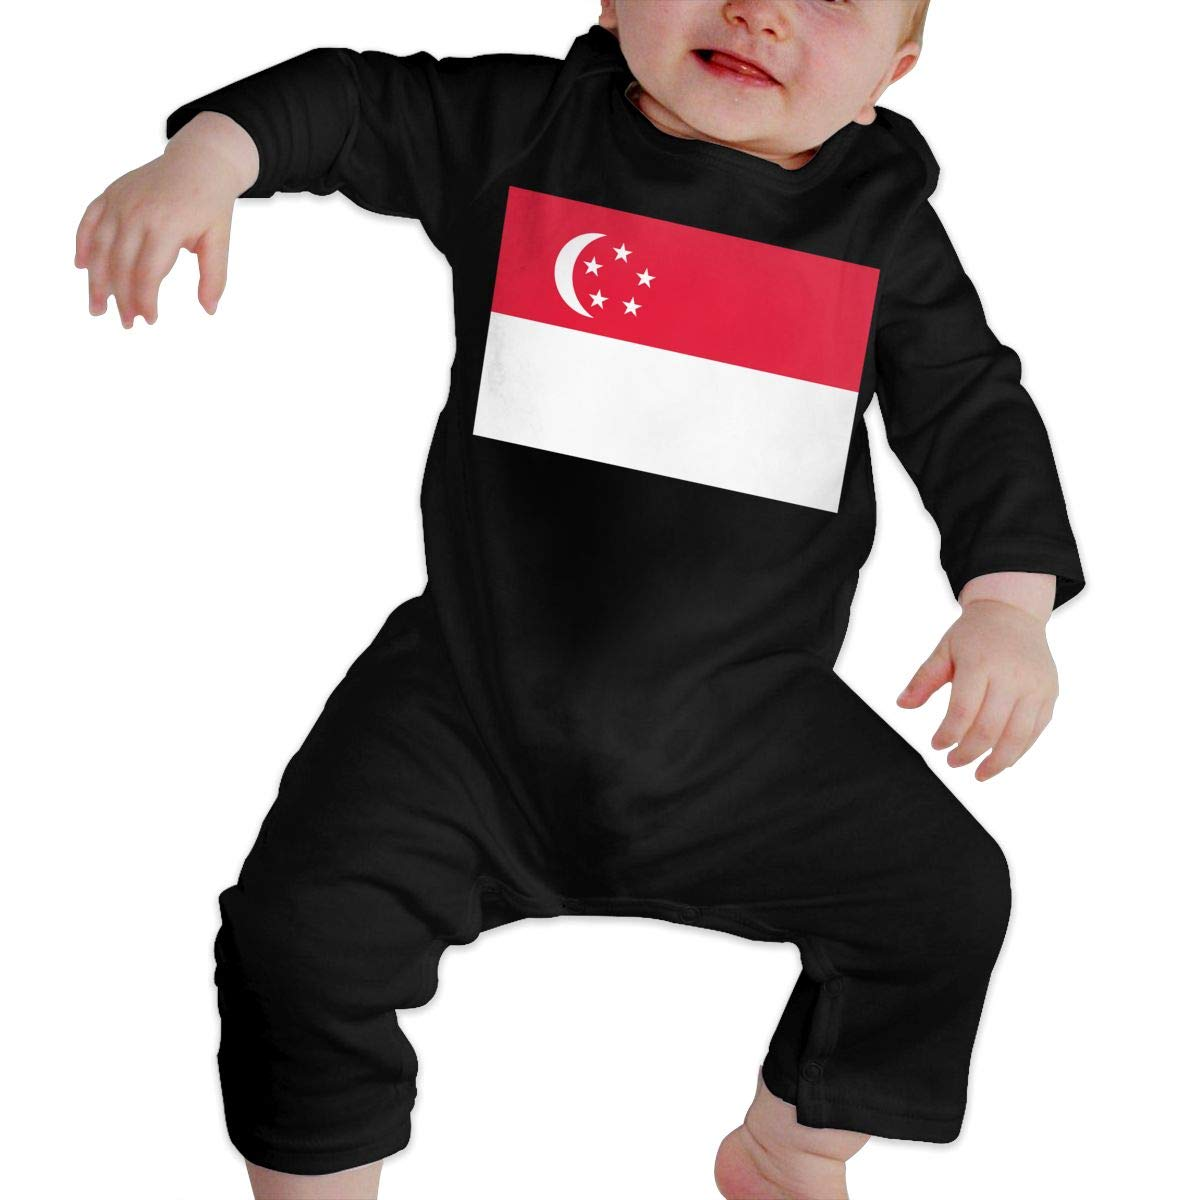 U99oi-9 Long Sleeve Cotton Rompers for Baby Boys and Girls Fashion Singapore Flag Sleepwear